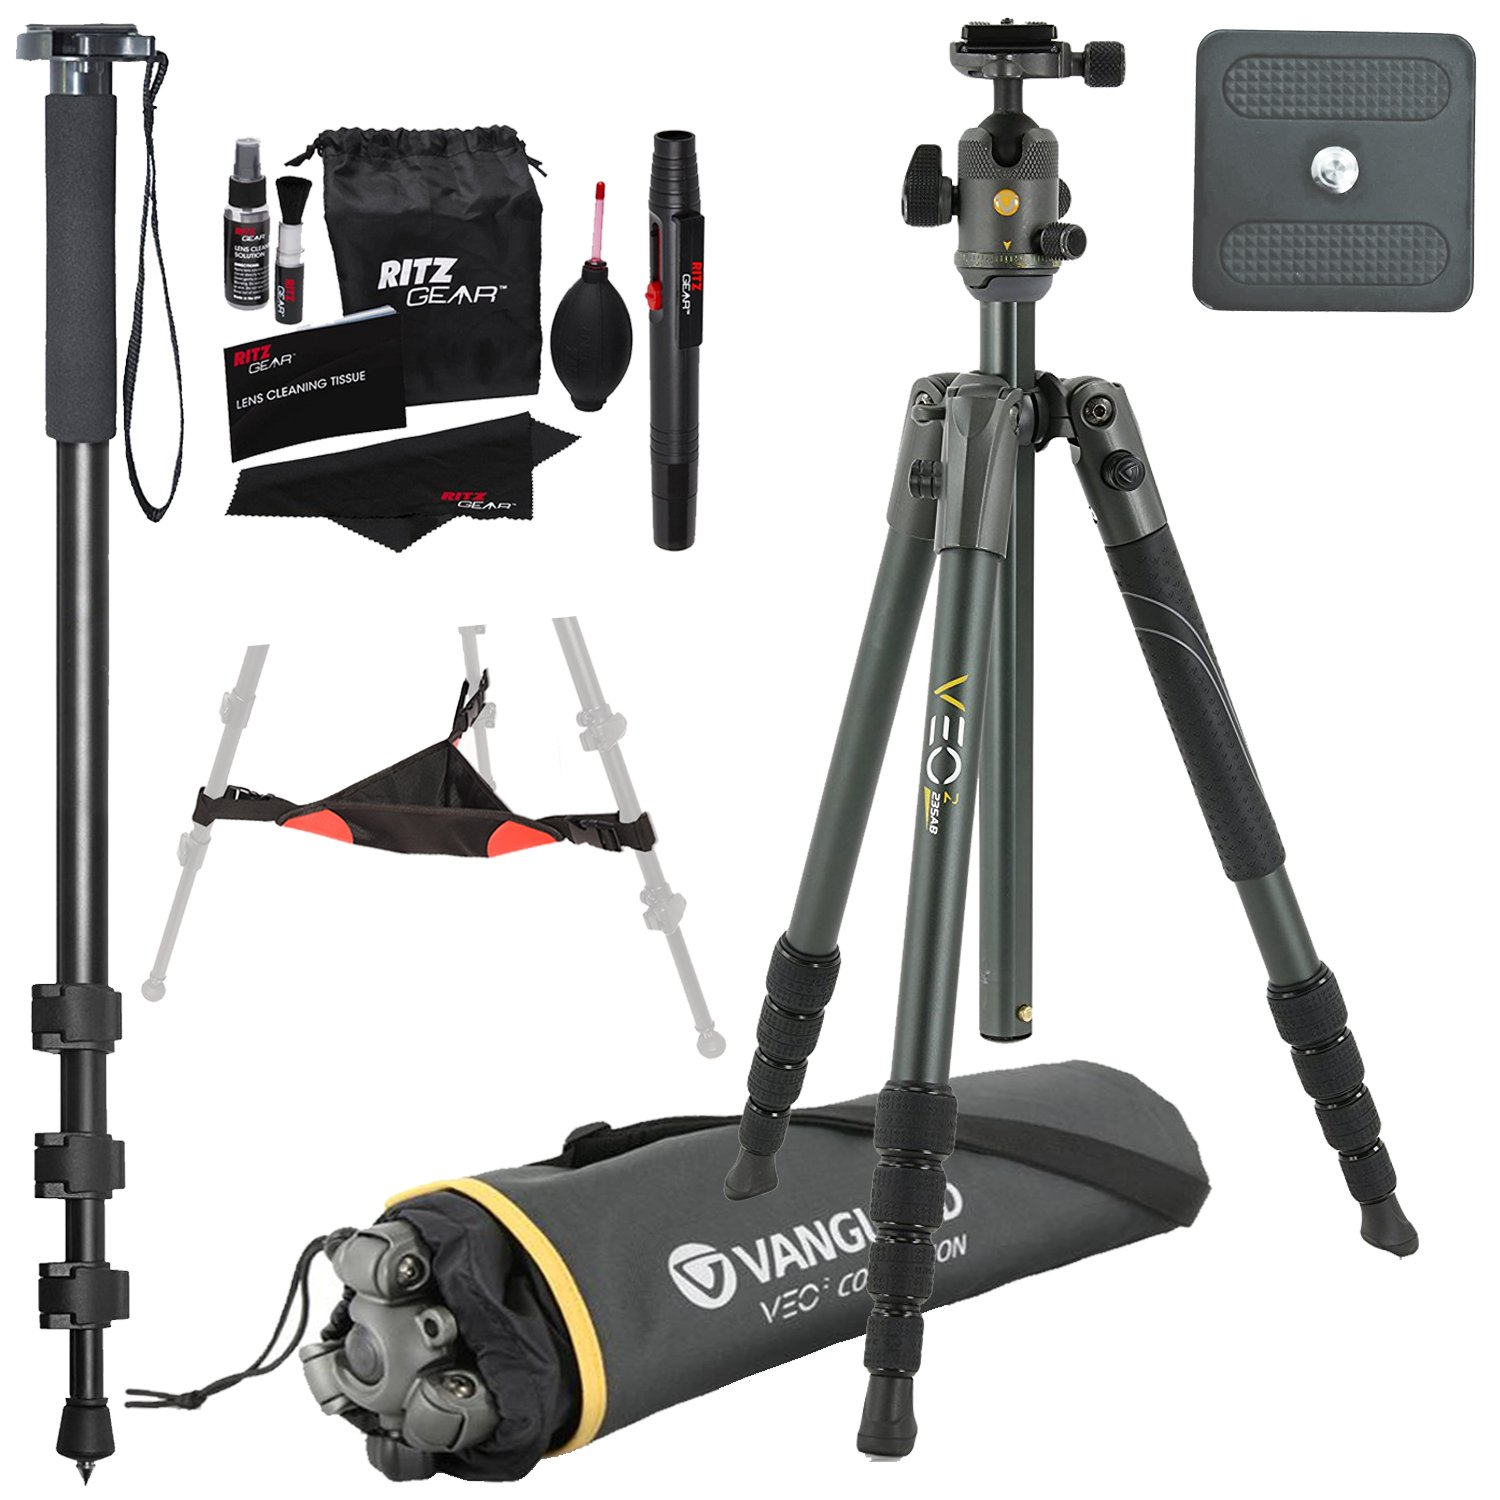 Vanguard VEO 2 204AB Blue Aluminum Tripod with VEO 2 BH-45 Ball Head, Ritz Gear Tripod Stone Bag, 72-Inch Monopod with Quick Release and Ritz Gear Cleaning Kit